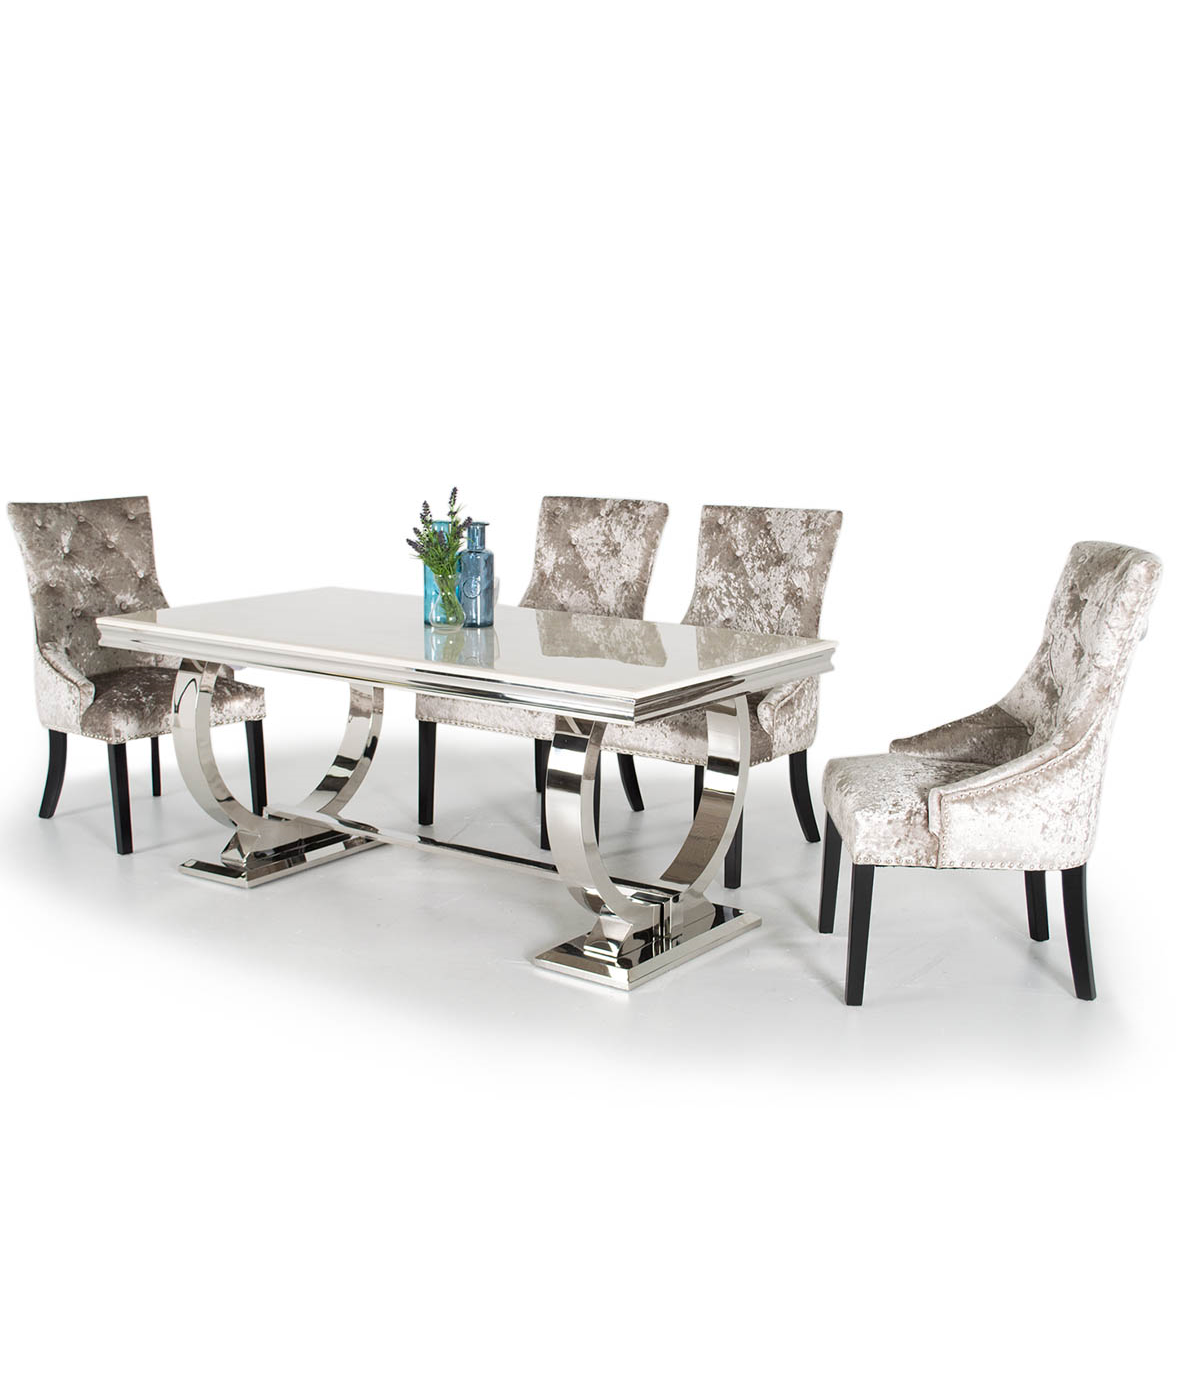 Venice Marble Dining Table With 6 Chairs Various Colours Dining Table Marble Dining Table Marble Dining